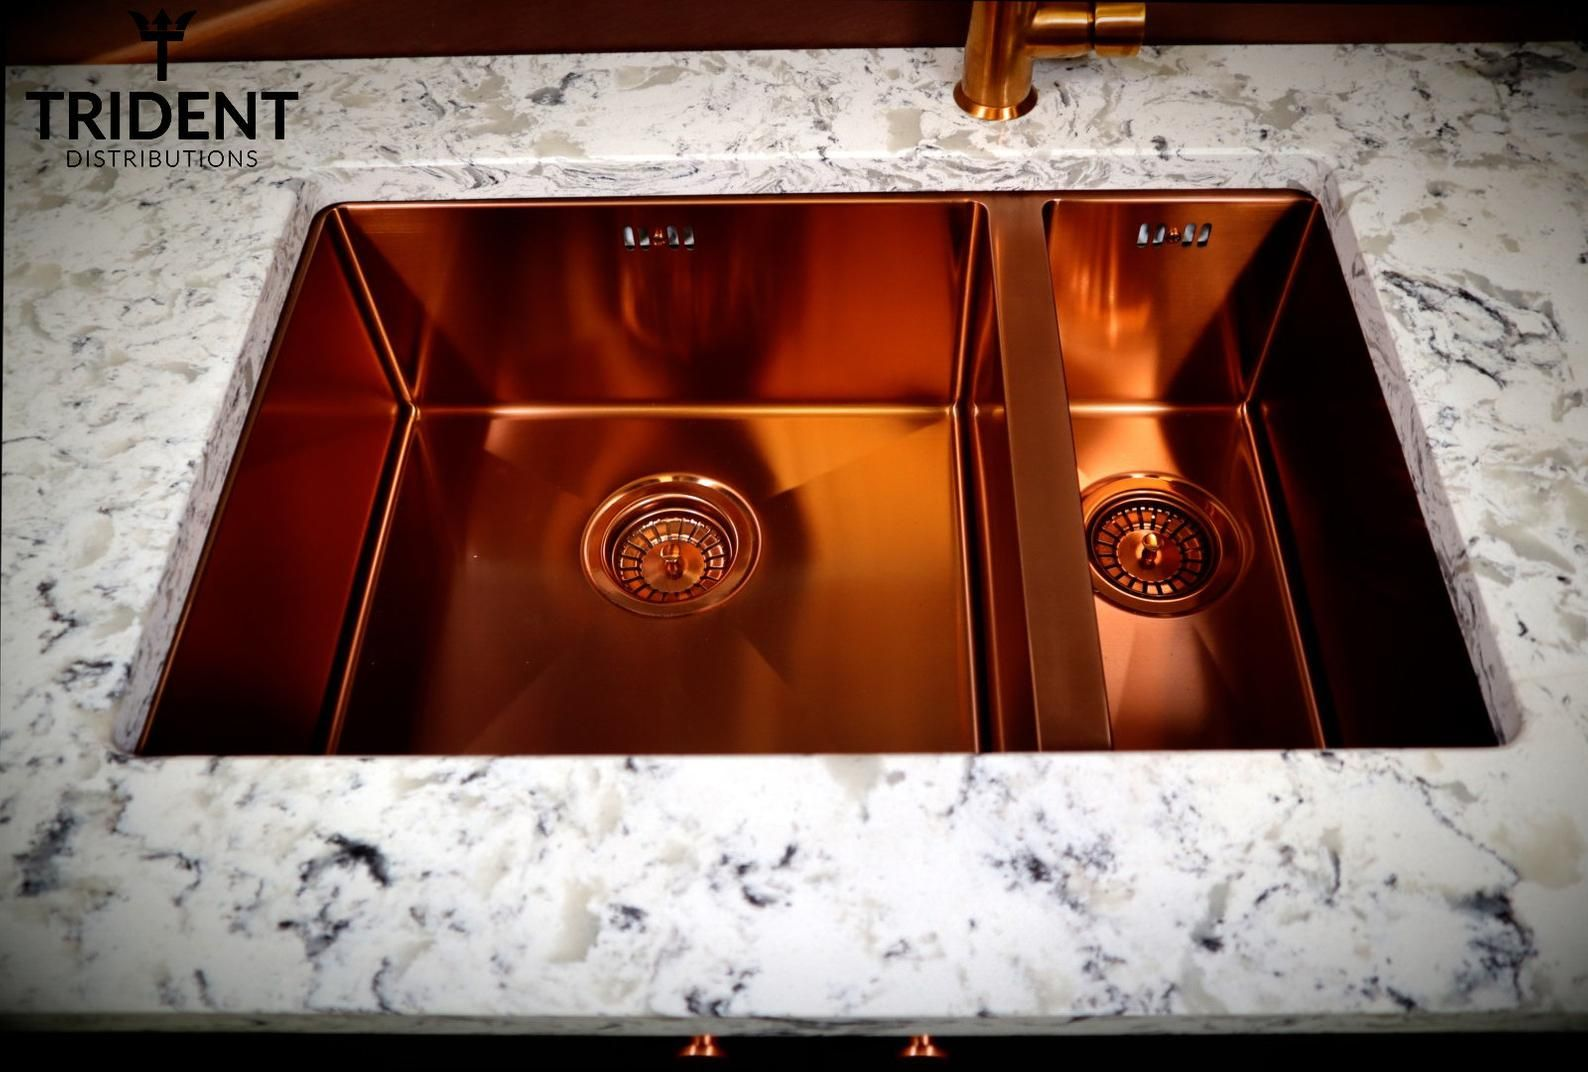 Beautiful Copper Inset Or Undermounted Sinks Etsy Copper Kitchen Sink Copper Undermount Sink Undermount Sink